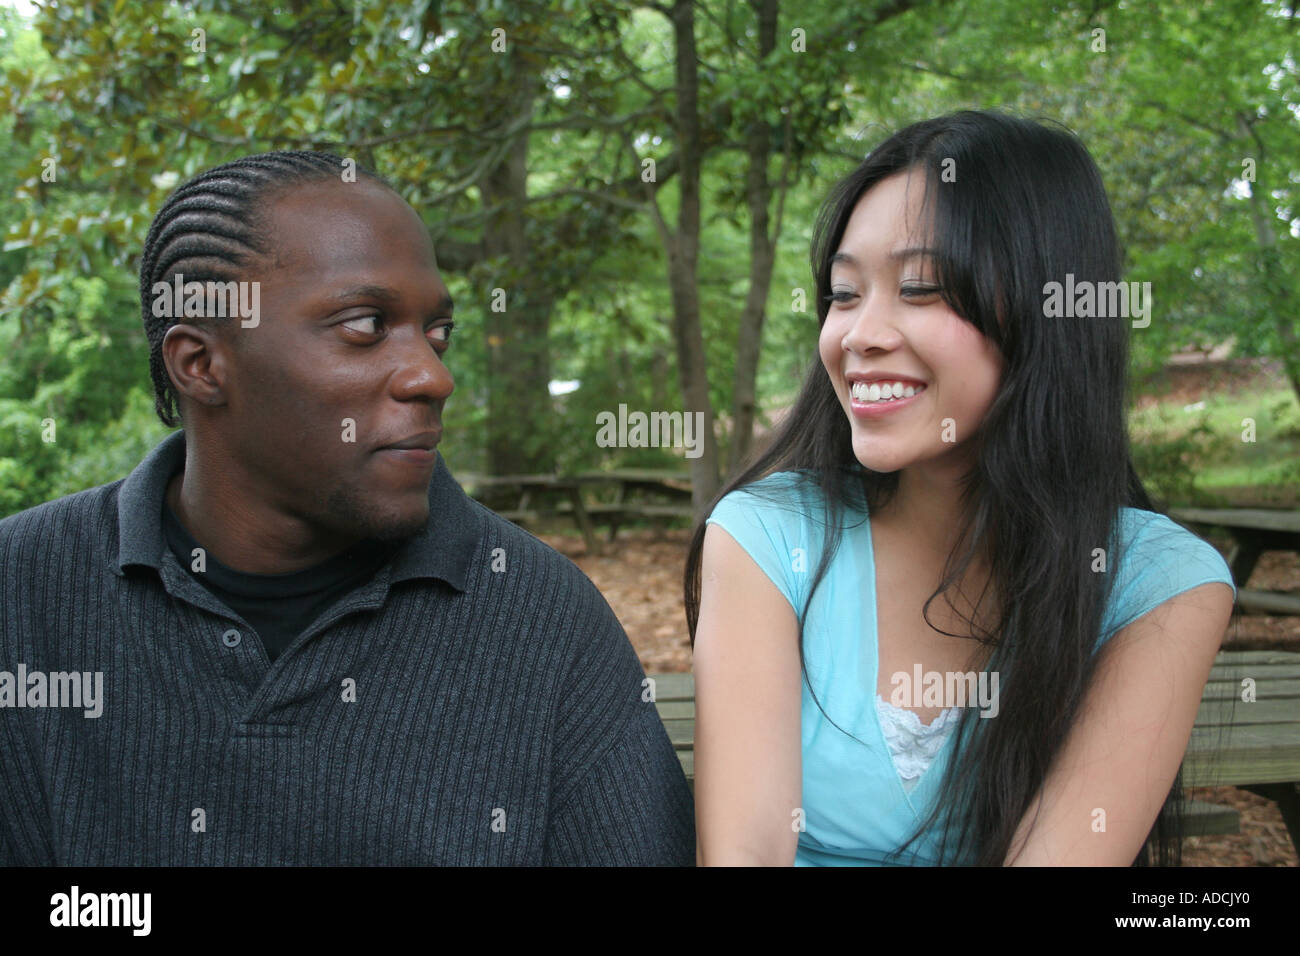 Congratulate, seems Interracial pics idea)))) event